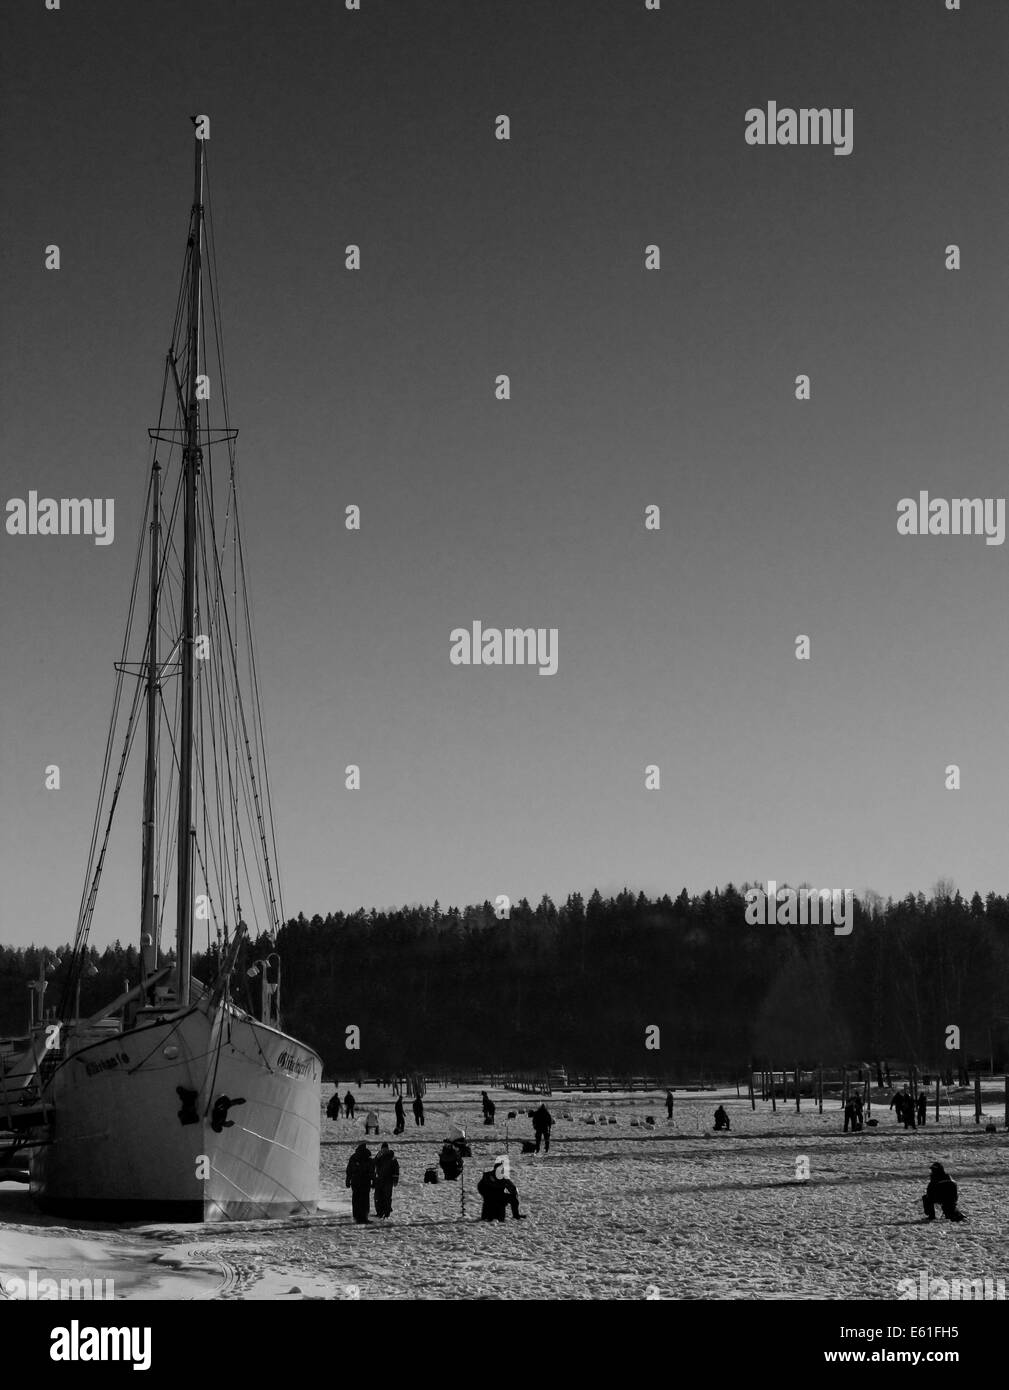 An image of Porvoo river in Finland and a tall ship moored with thick ice covering the river and fishermen on the Stock Photo